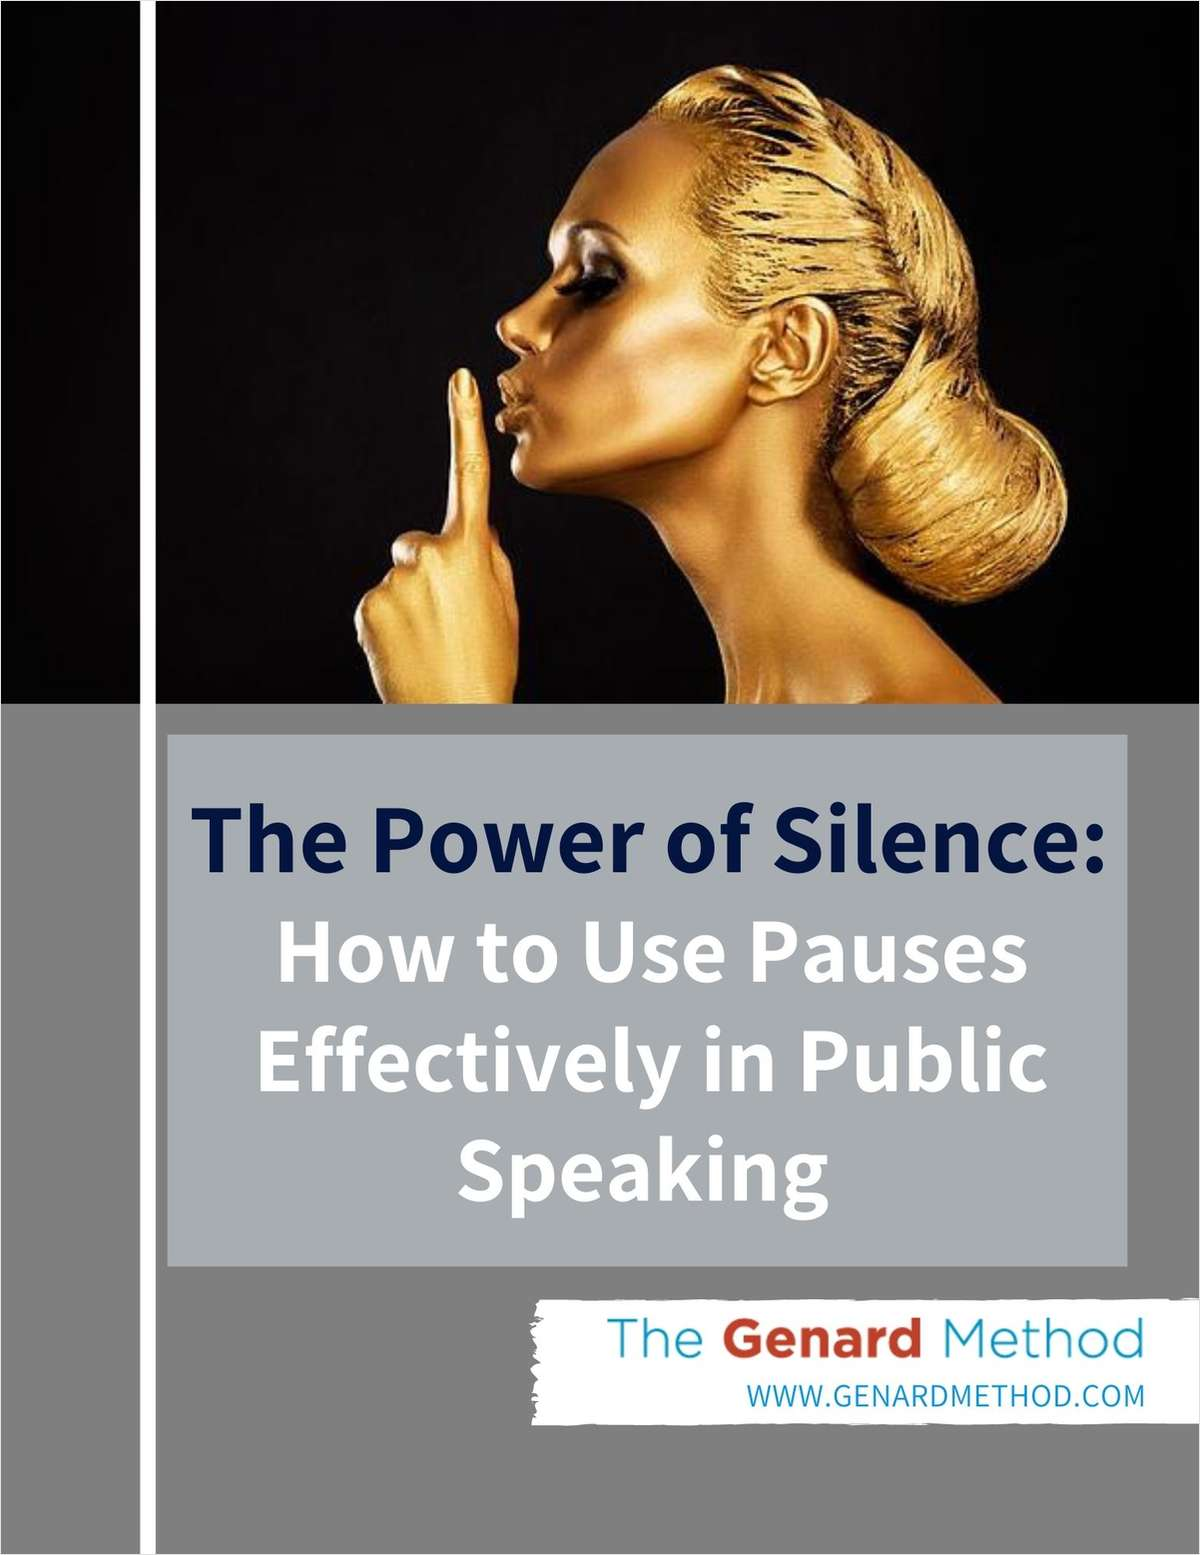 The Power of Silence: How to Use Pauses Effectively in Public Speaking